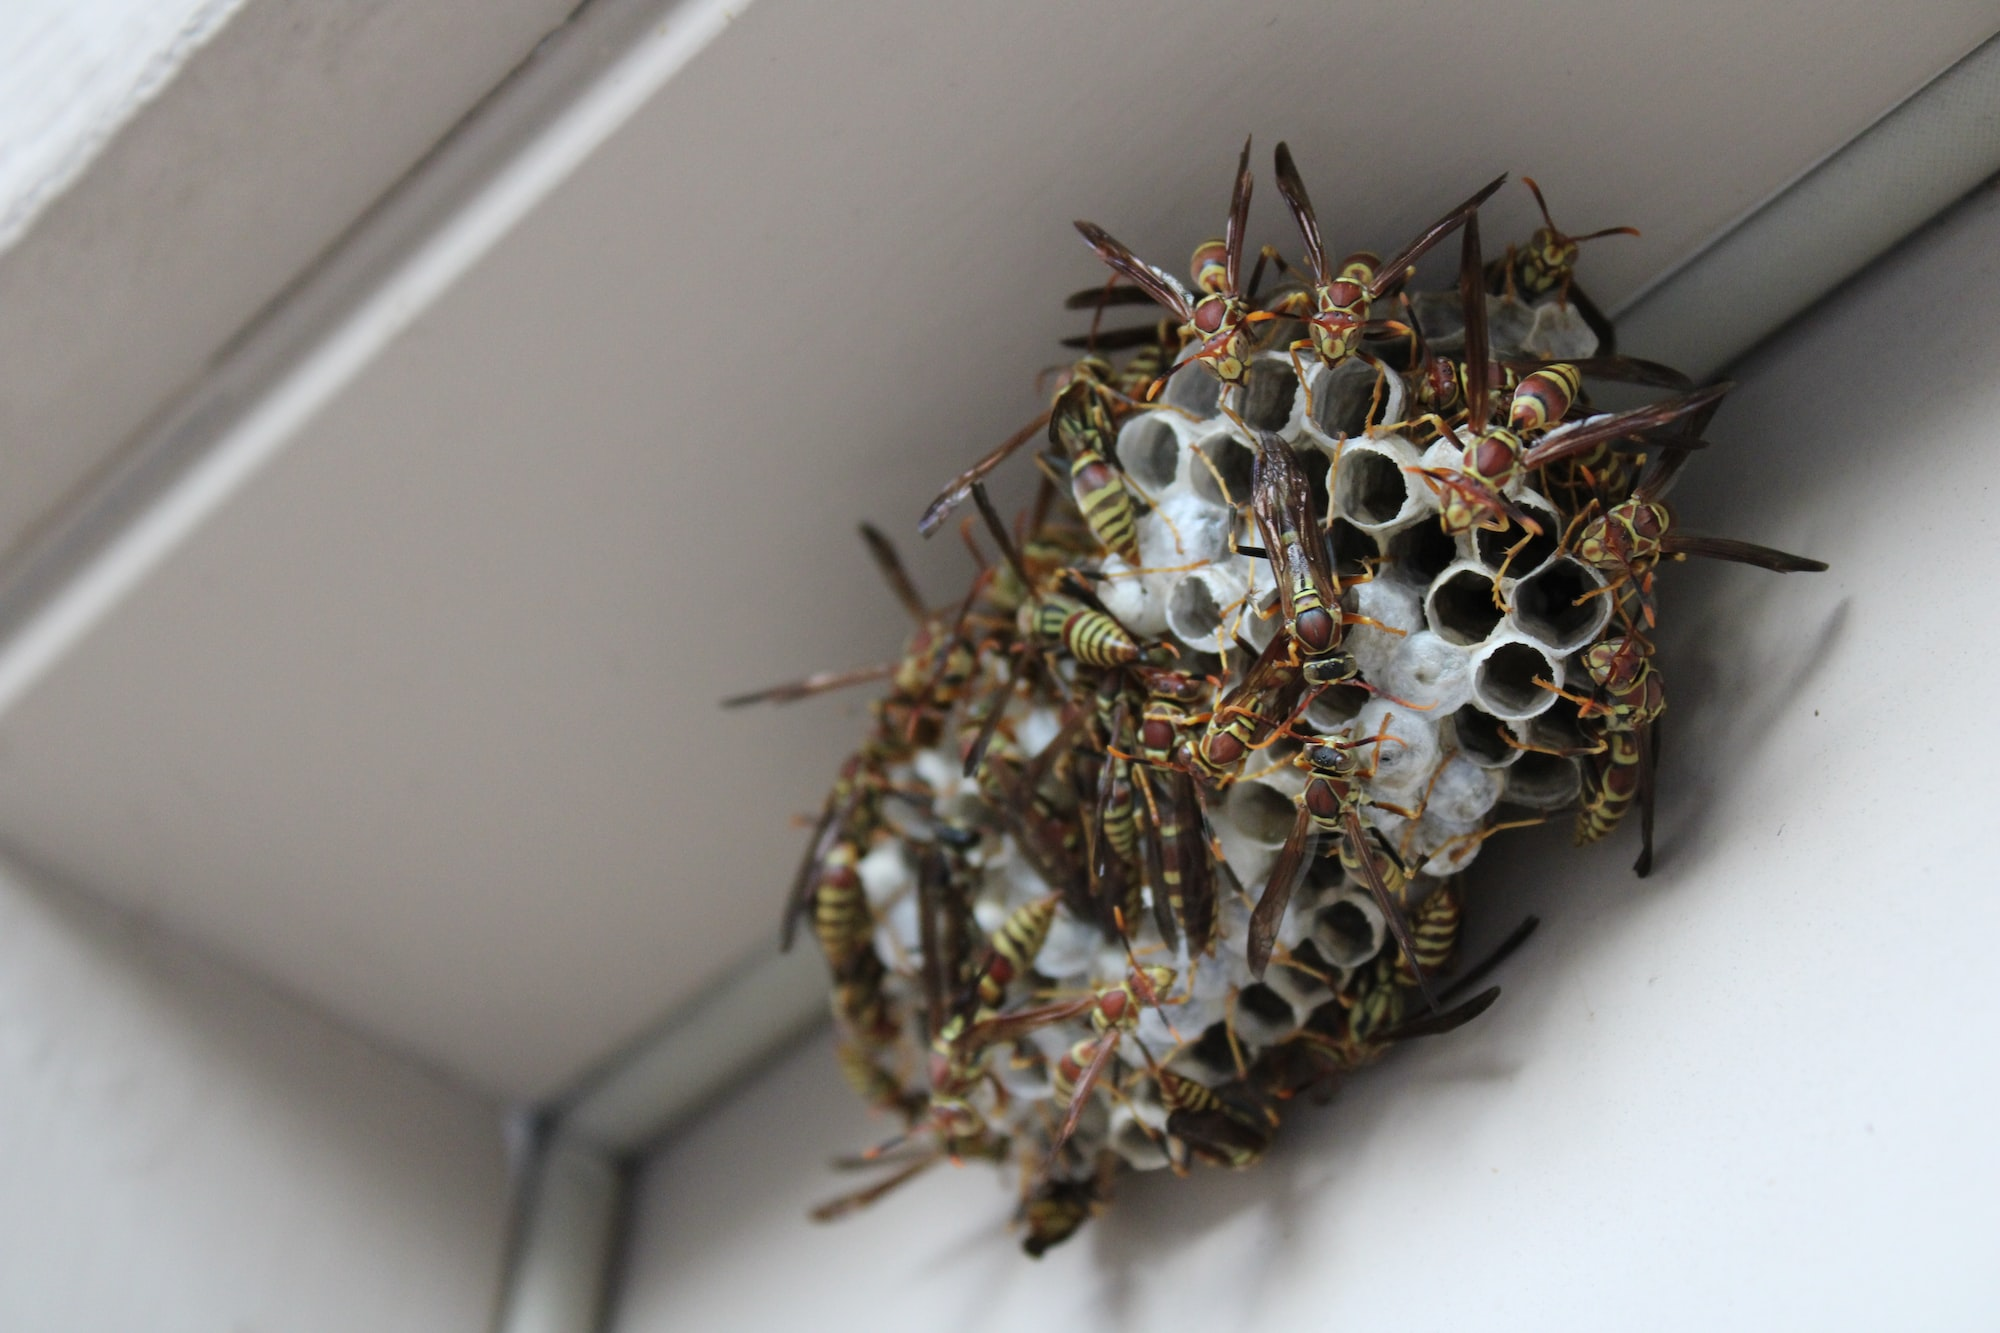 Bee Safe Bee Removal shows a close-up look at a wasp nest during a removal for an exposed beehive. Over 30,000 bees were saved!